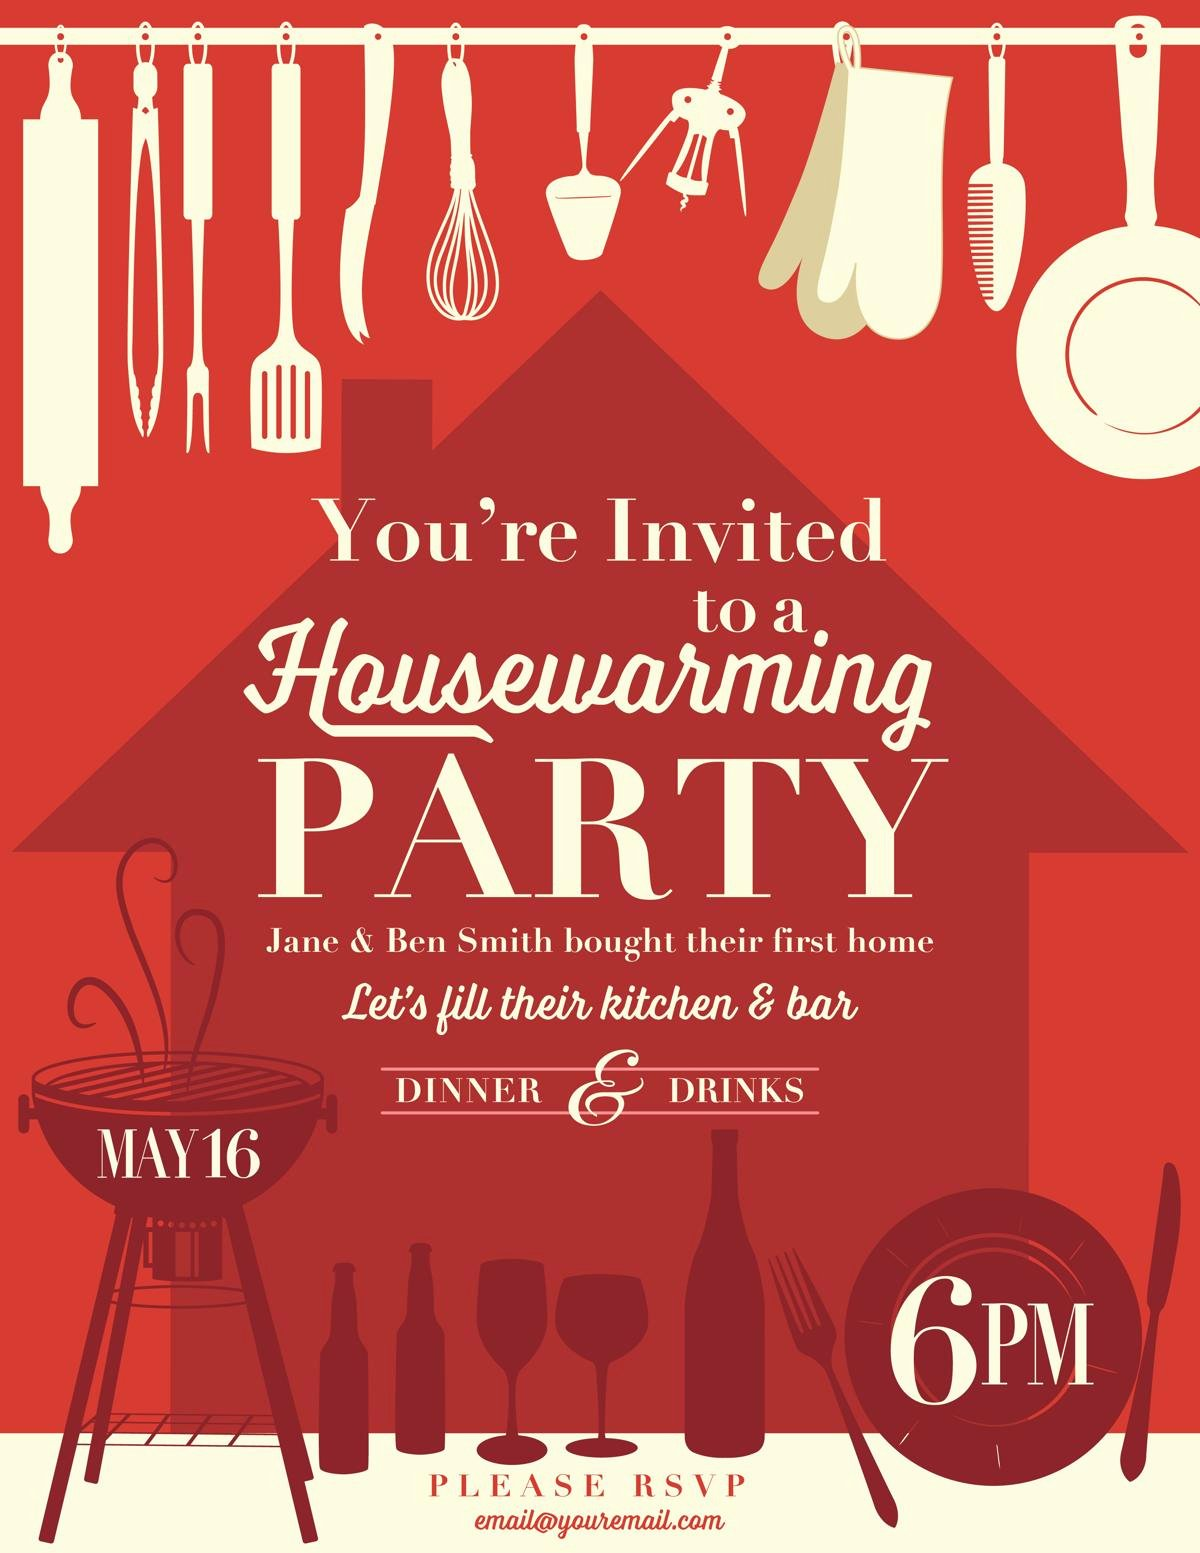 Housewarming Images for Invitation Luxury Wondering About the Housewarming Party Etiquette Learn It